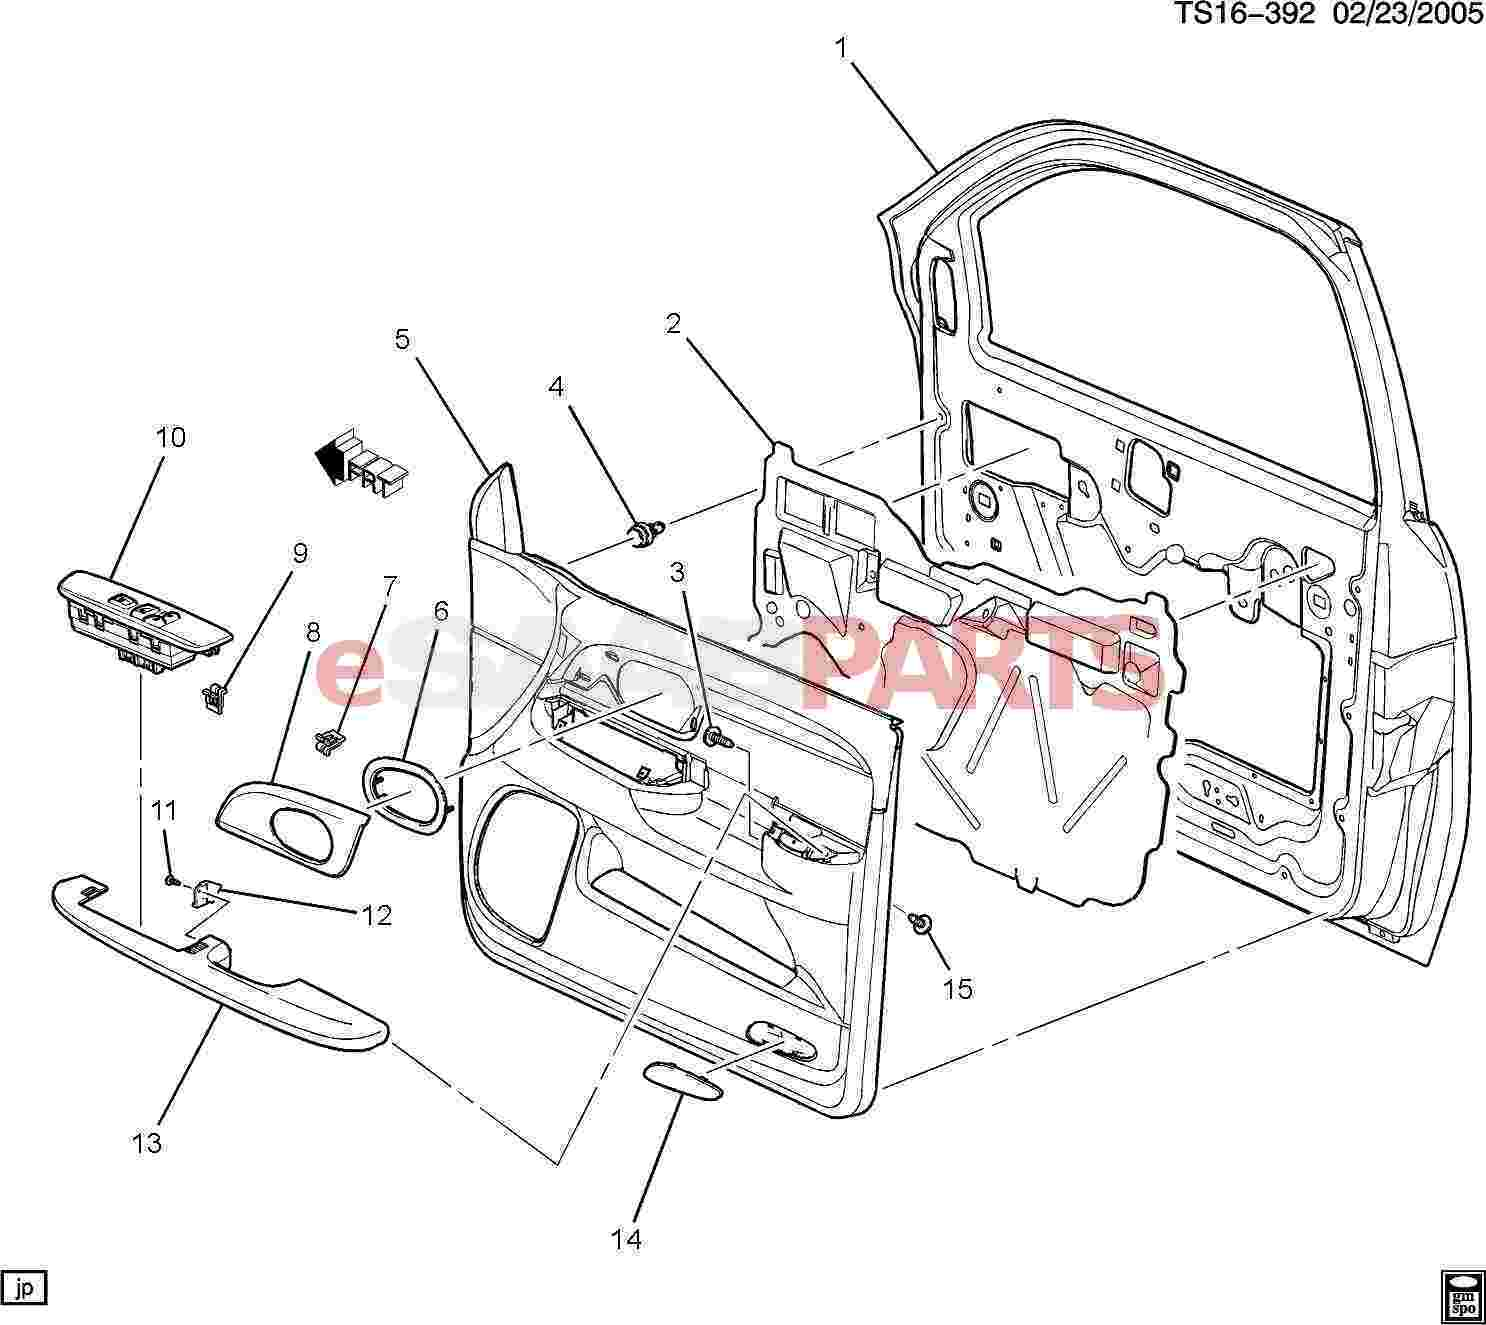 exterior door parts. esaabparts.com - saab 9-7x \u003e car body: internal parts door front trim/side front-passenger exterior